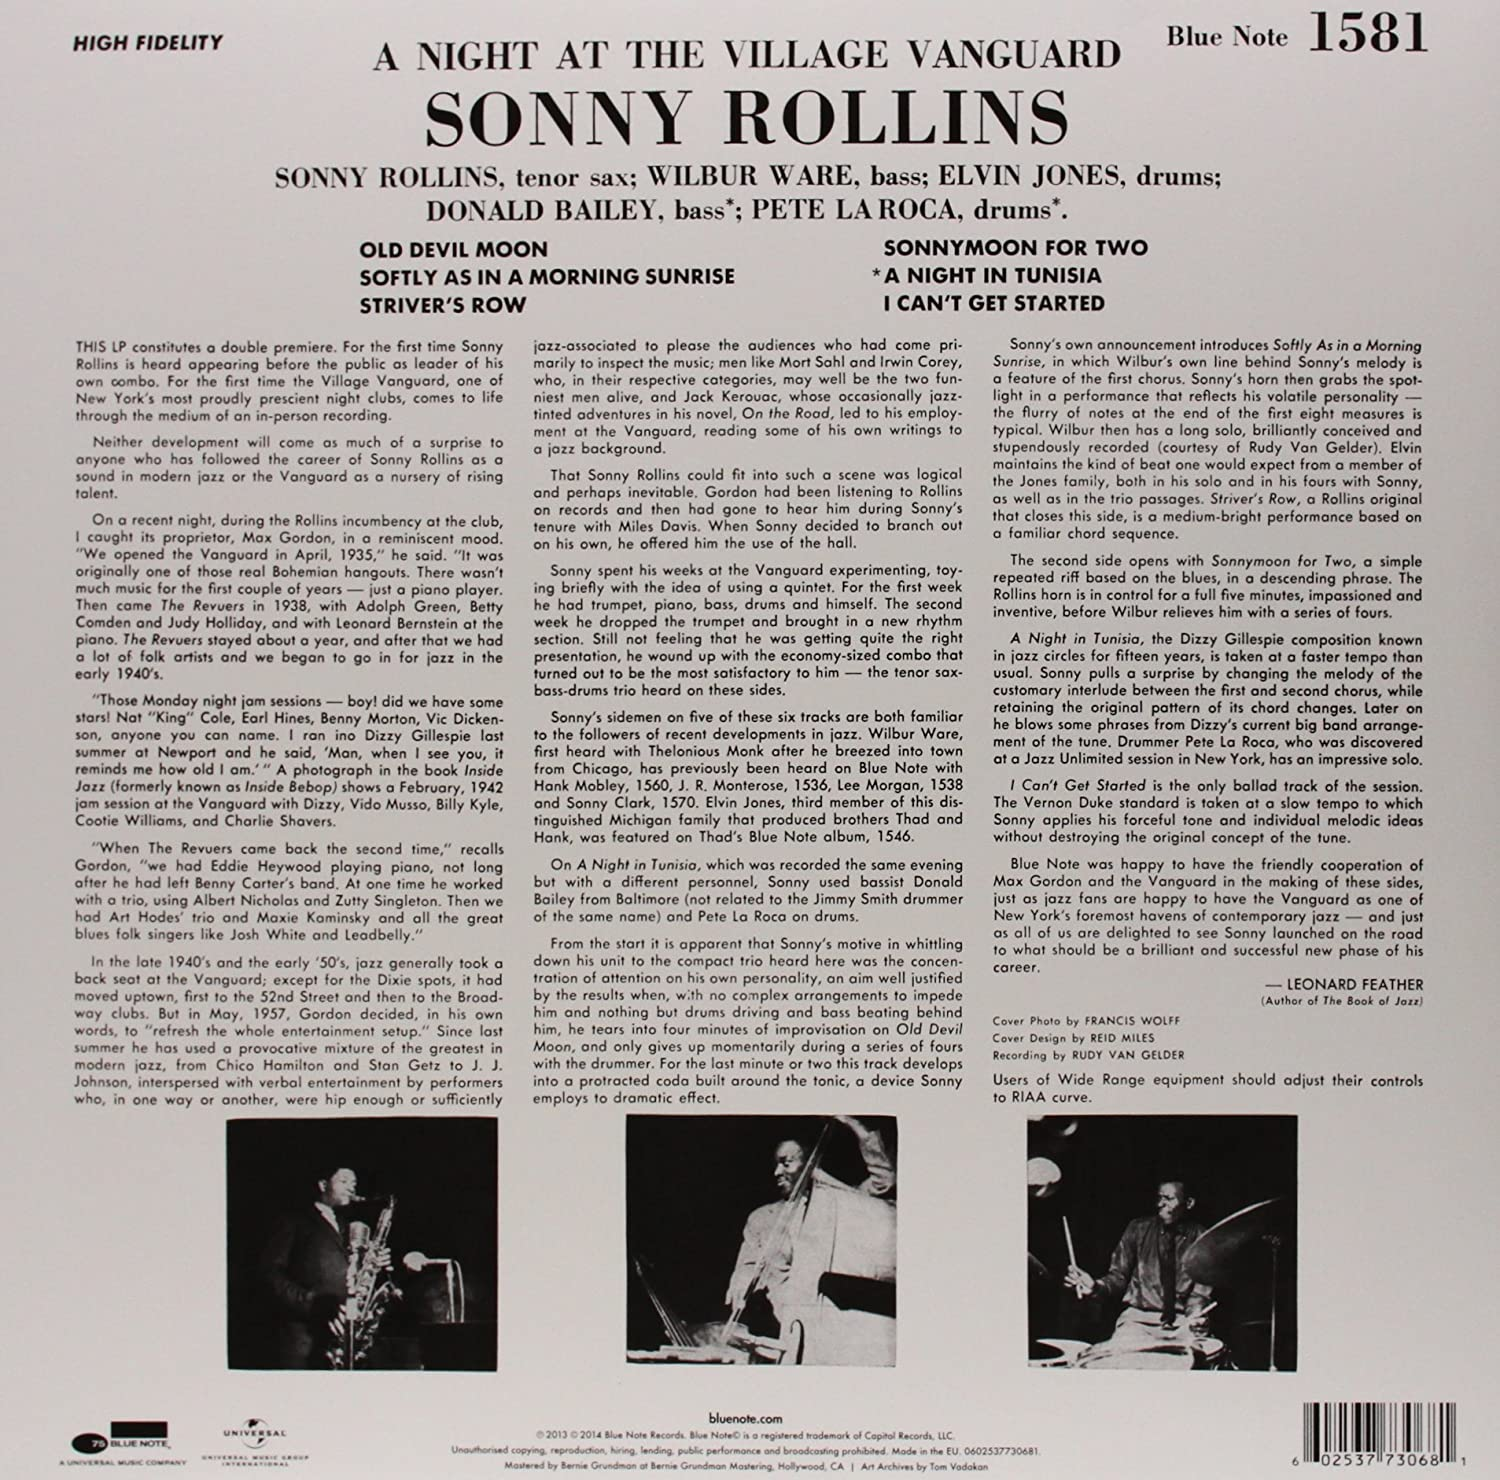 Sonny Rollins  A Night At The Village Vanguard [lp]  Amazon Music